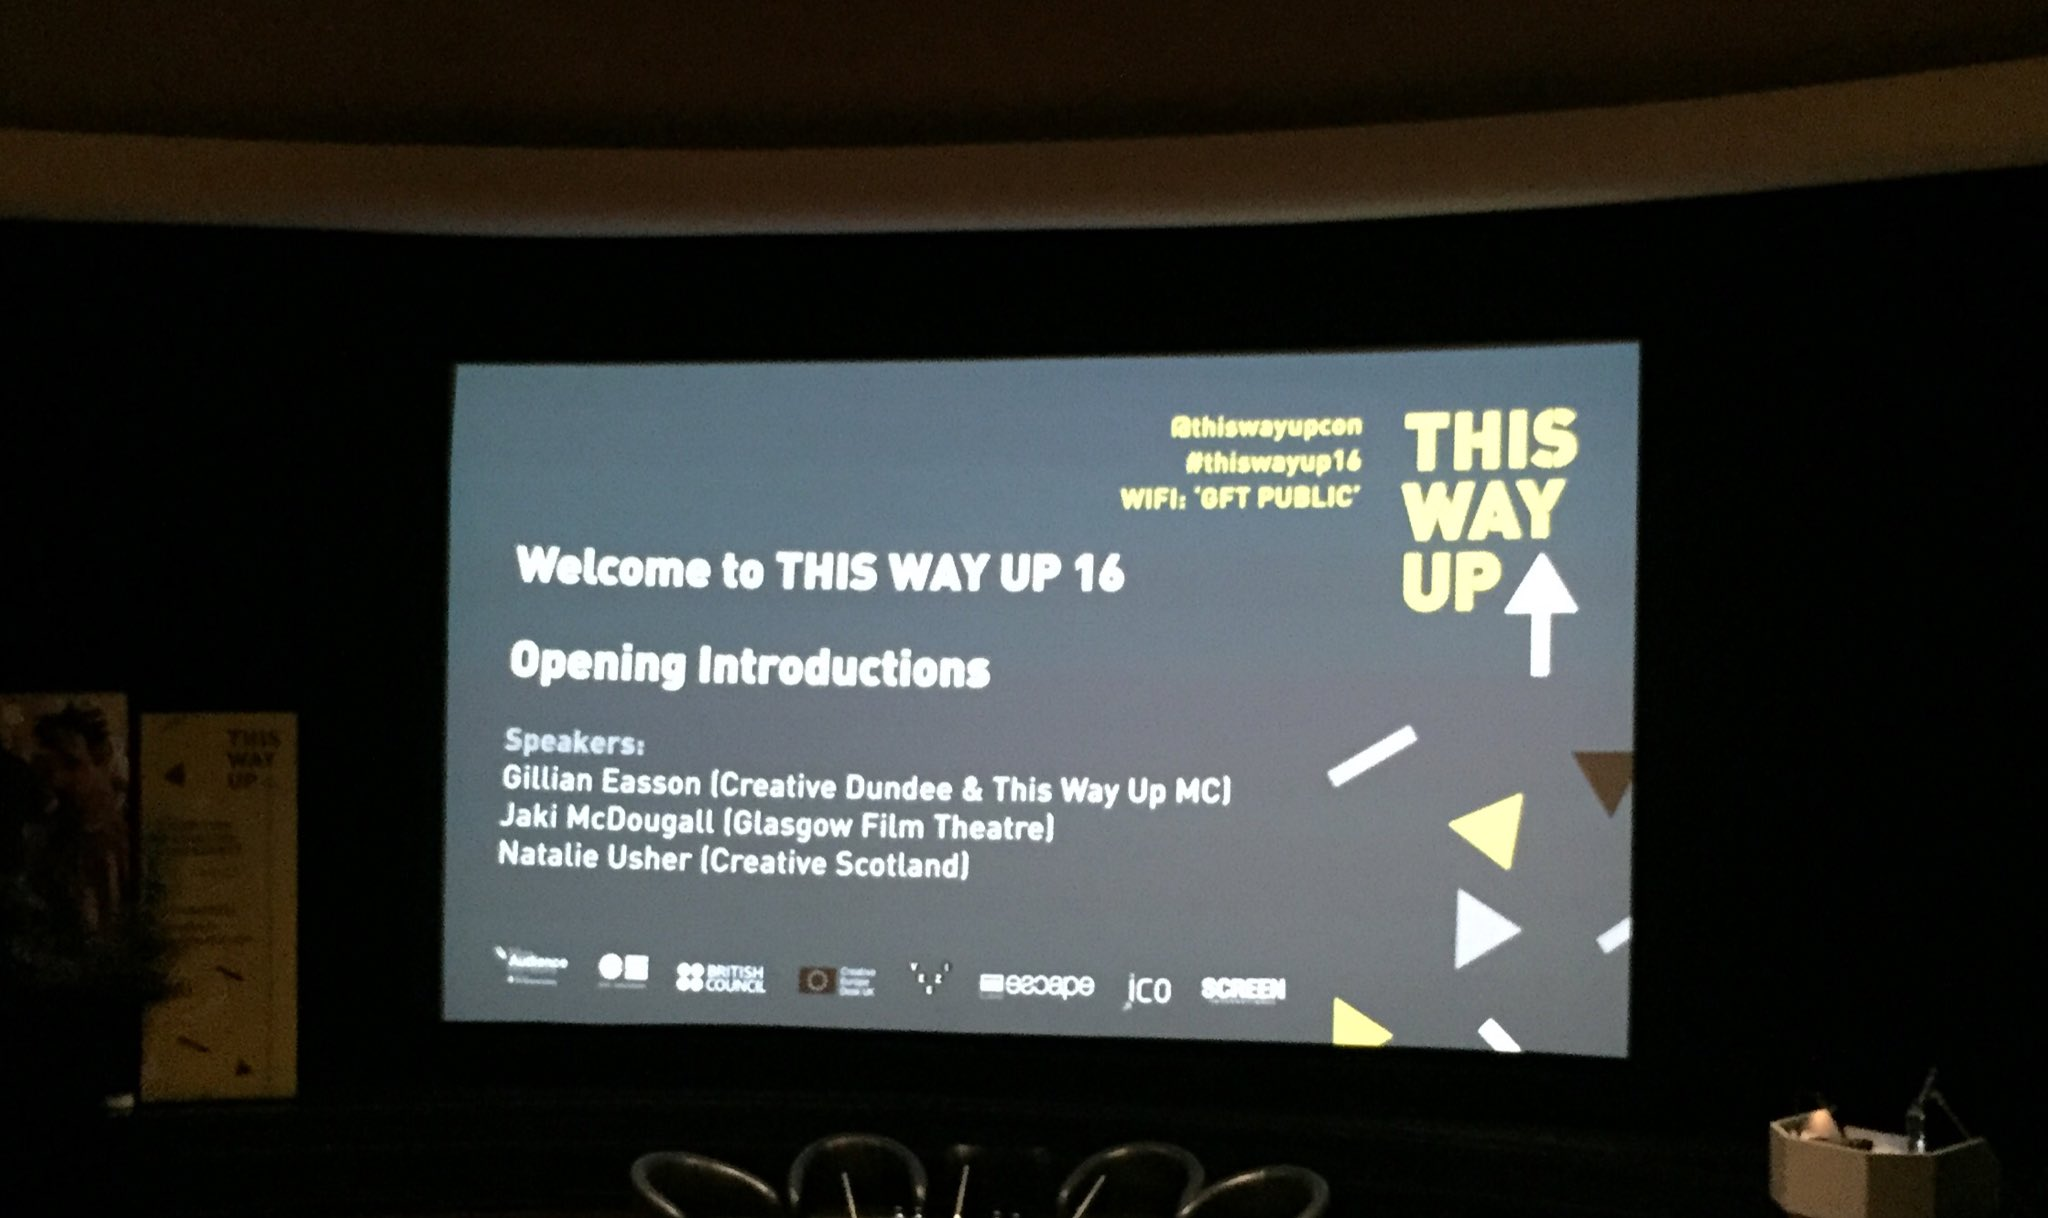 Looking forward to getting stuck into the keynotes @thiswayupcon #ThisWayUp16 https://t.co/9ueOrAd9FX